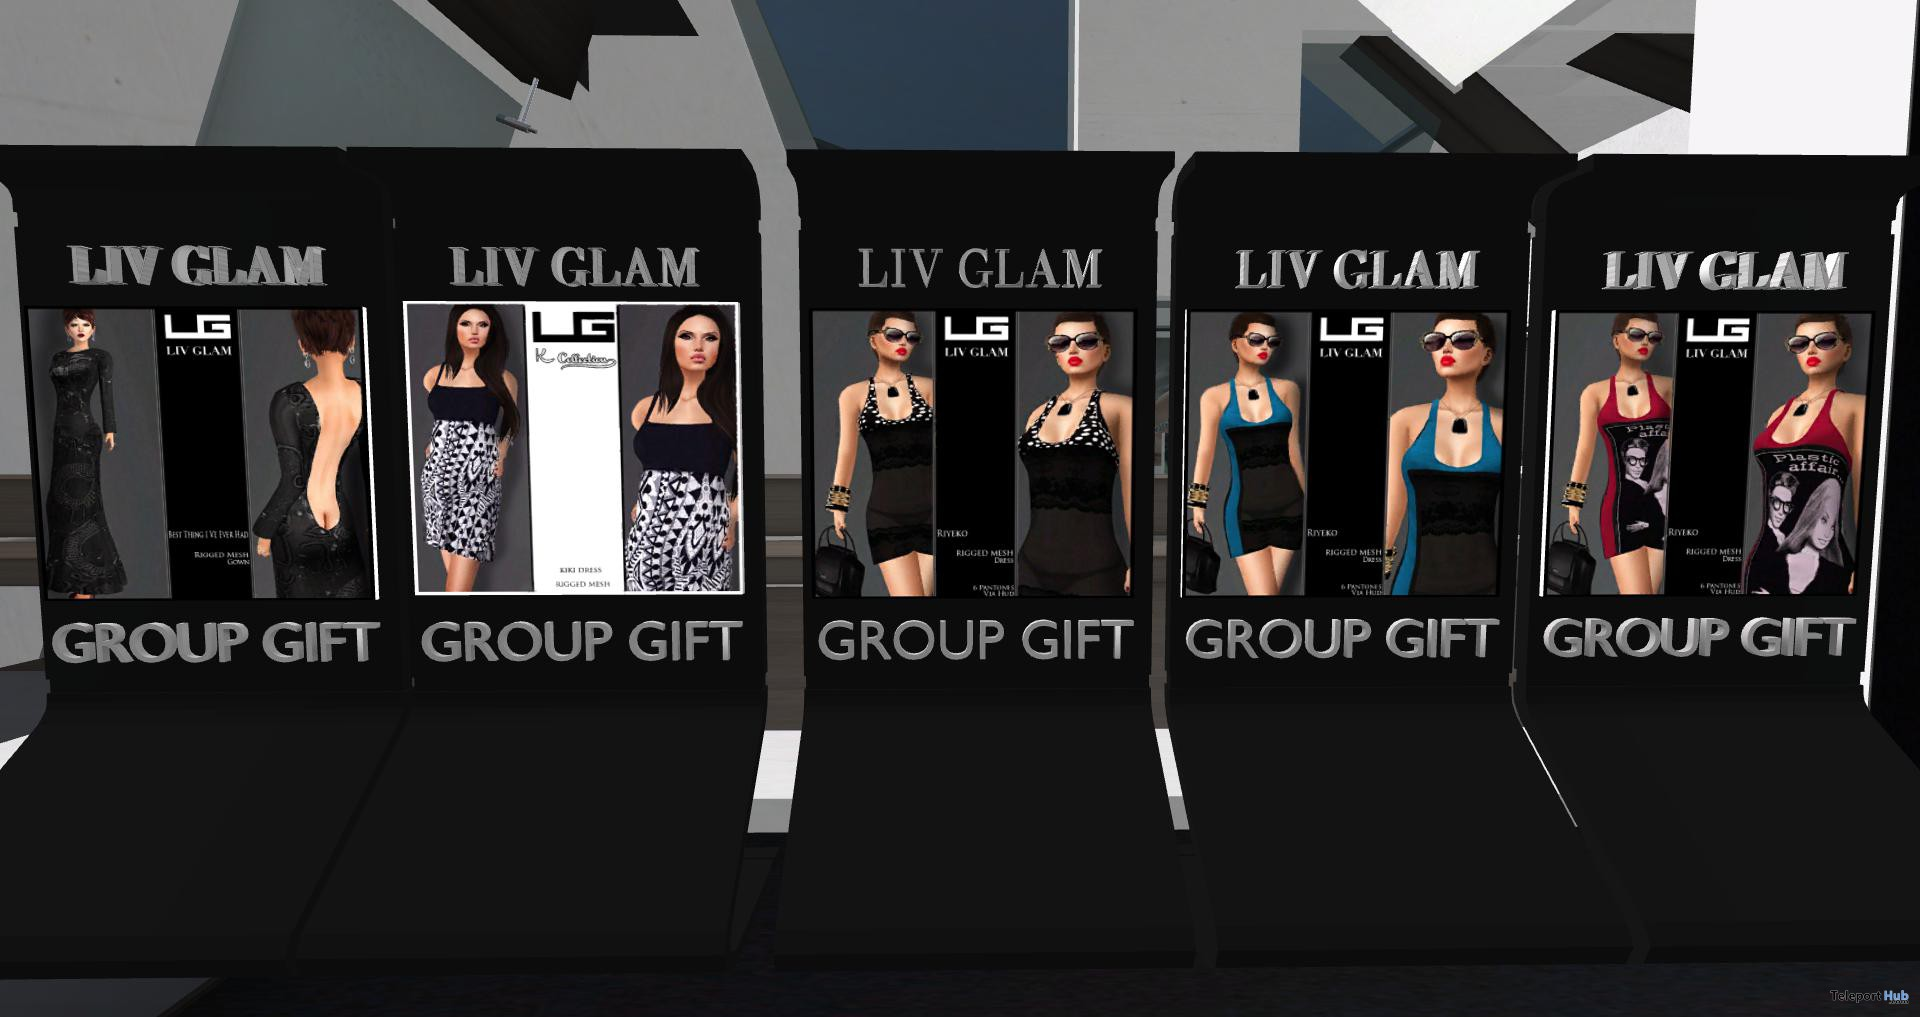 Six Dresses Group Gifts by Liv Glam - Teleport Hub - teleporthub.com